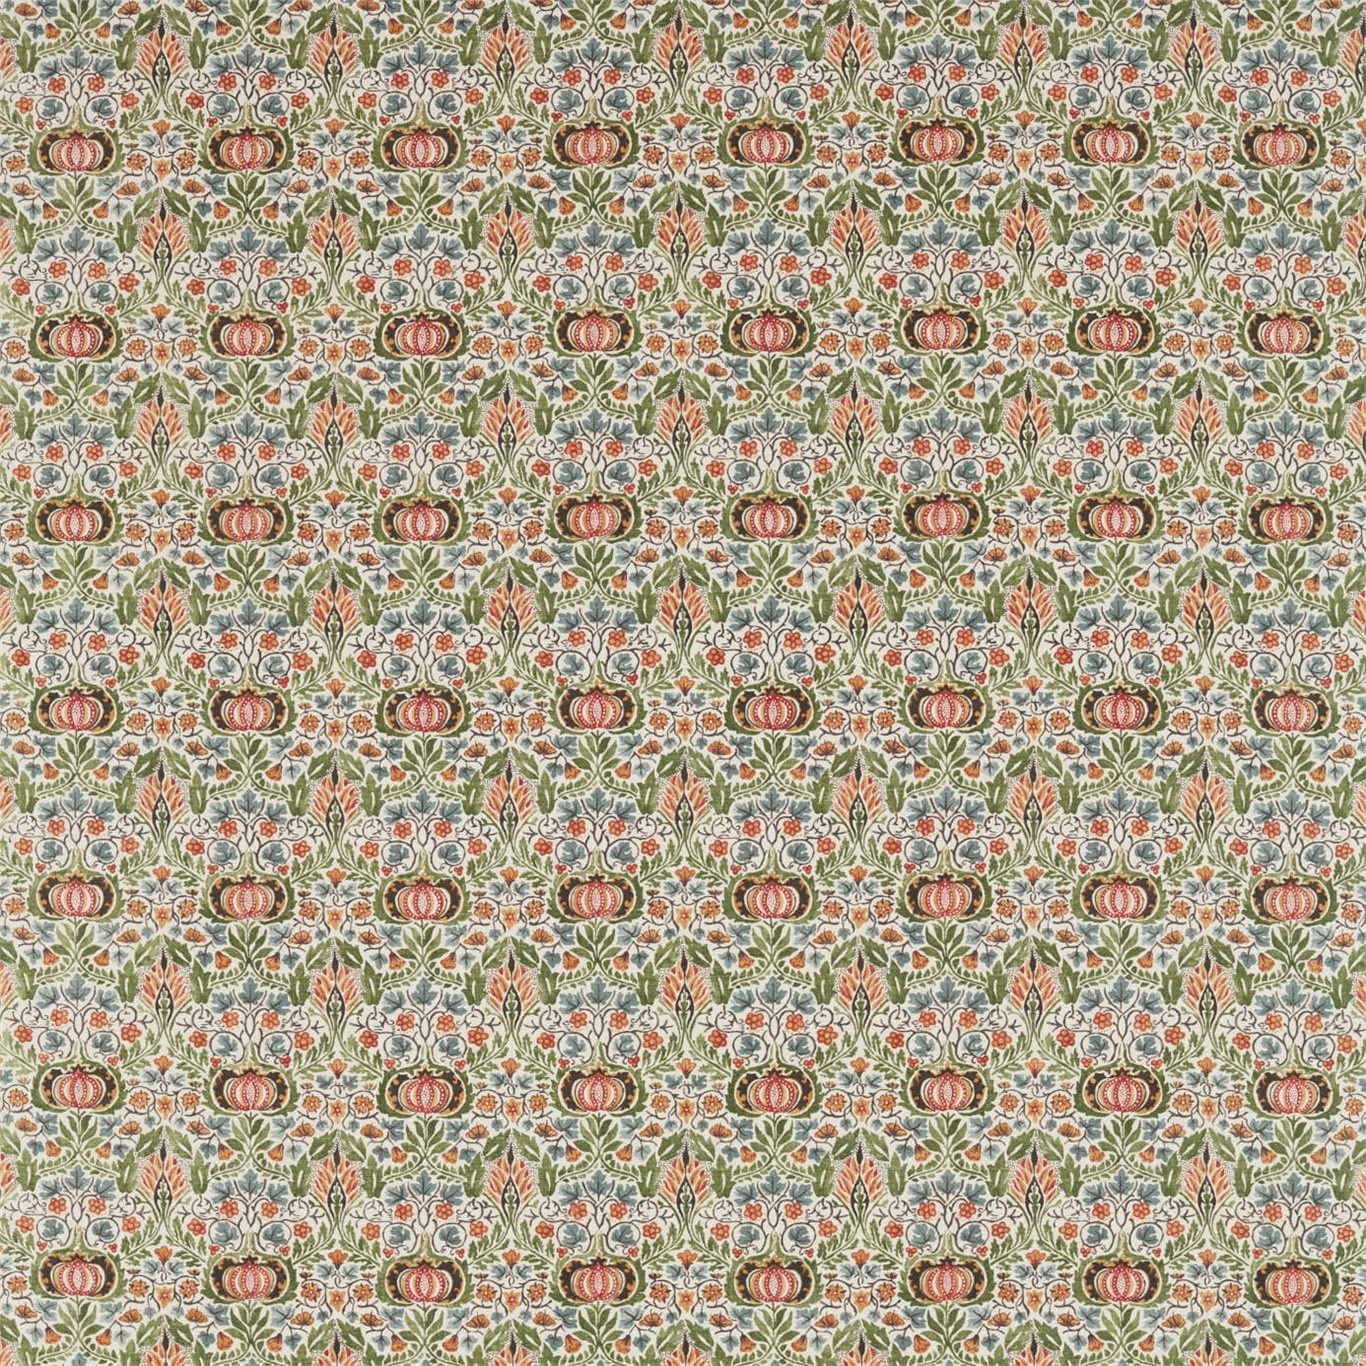 Image of Morris & Co Little Chintz Olive/Ochre Fabric 226408